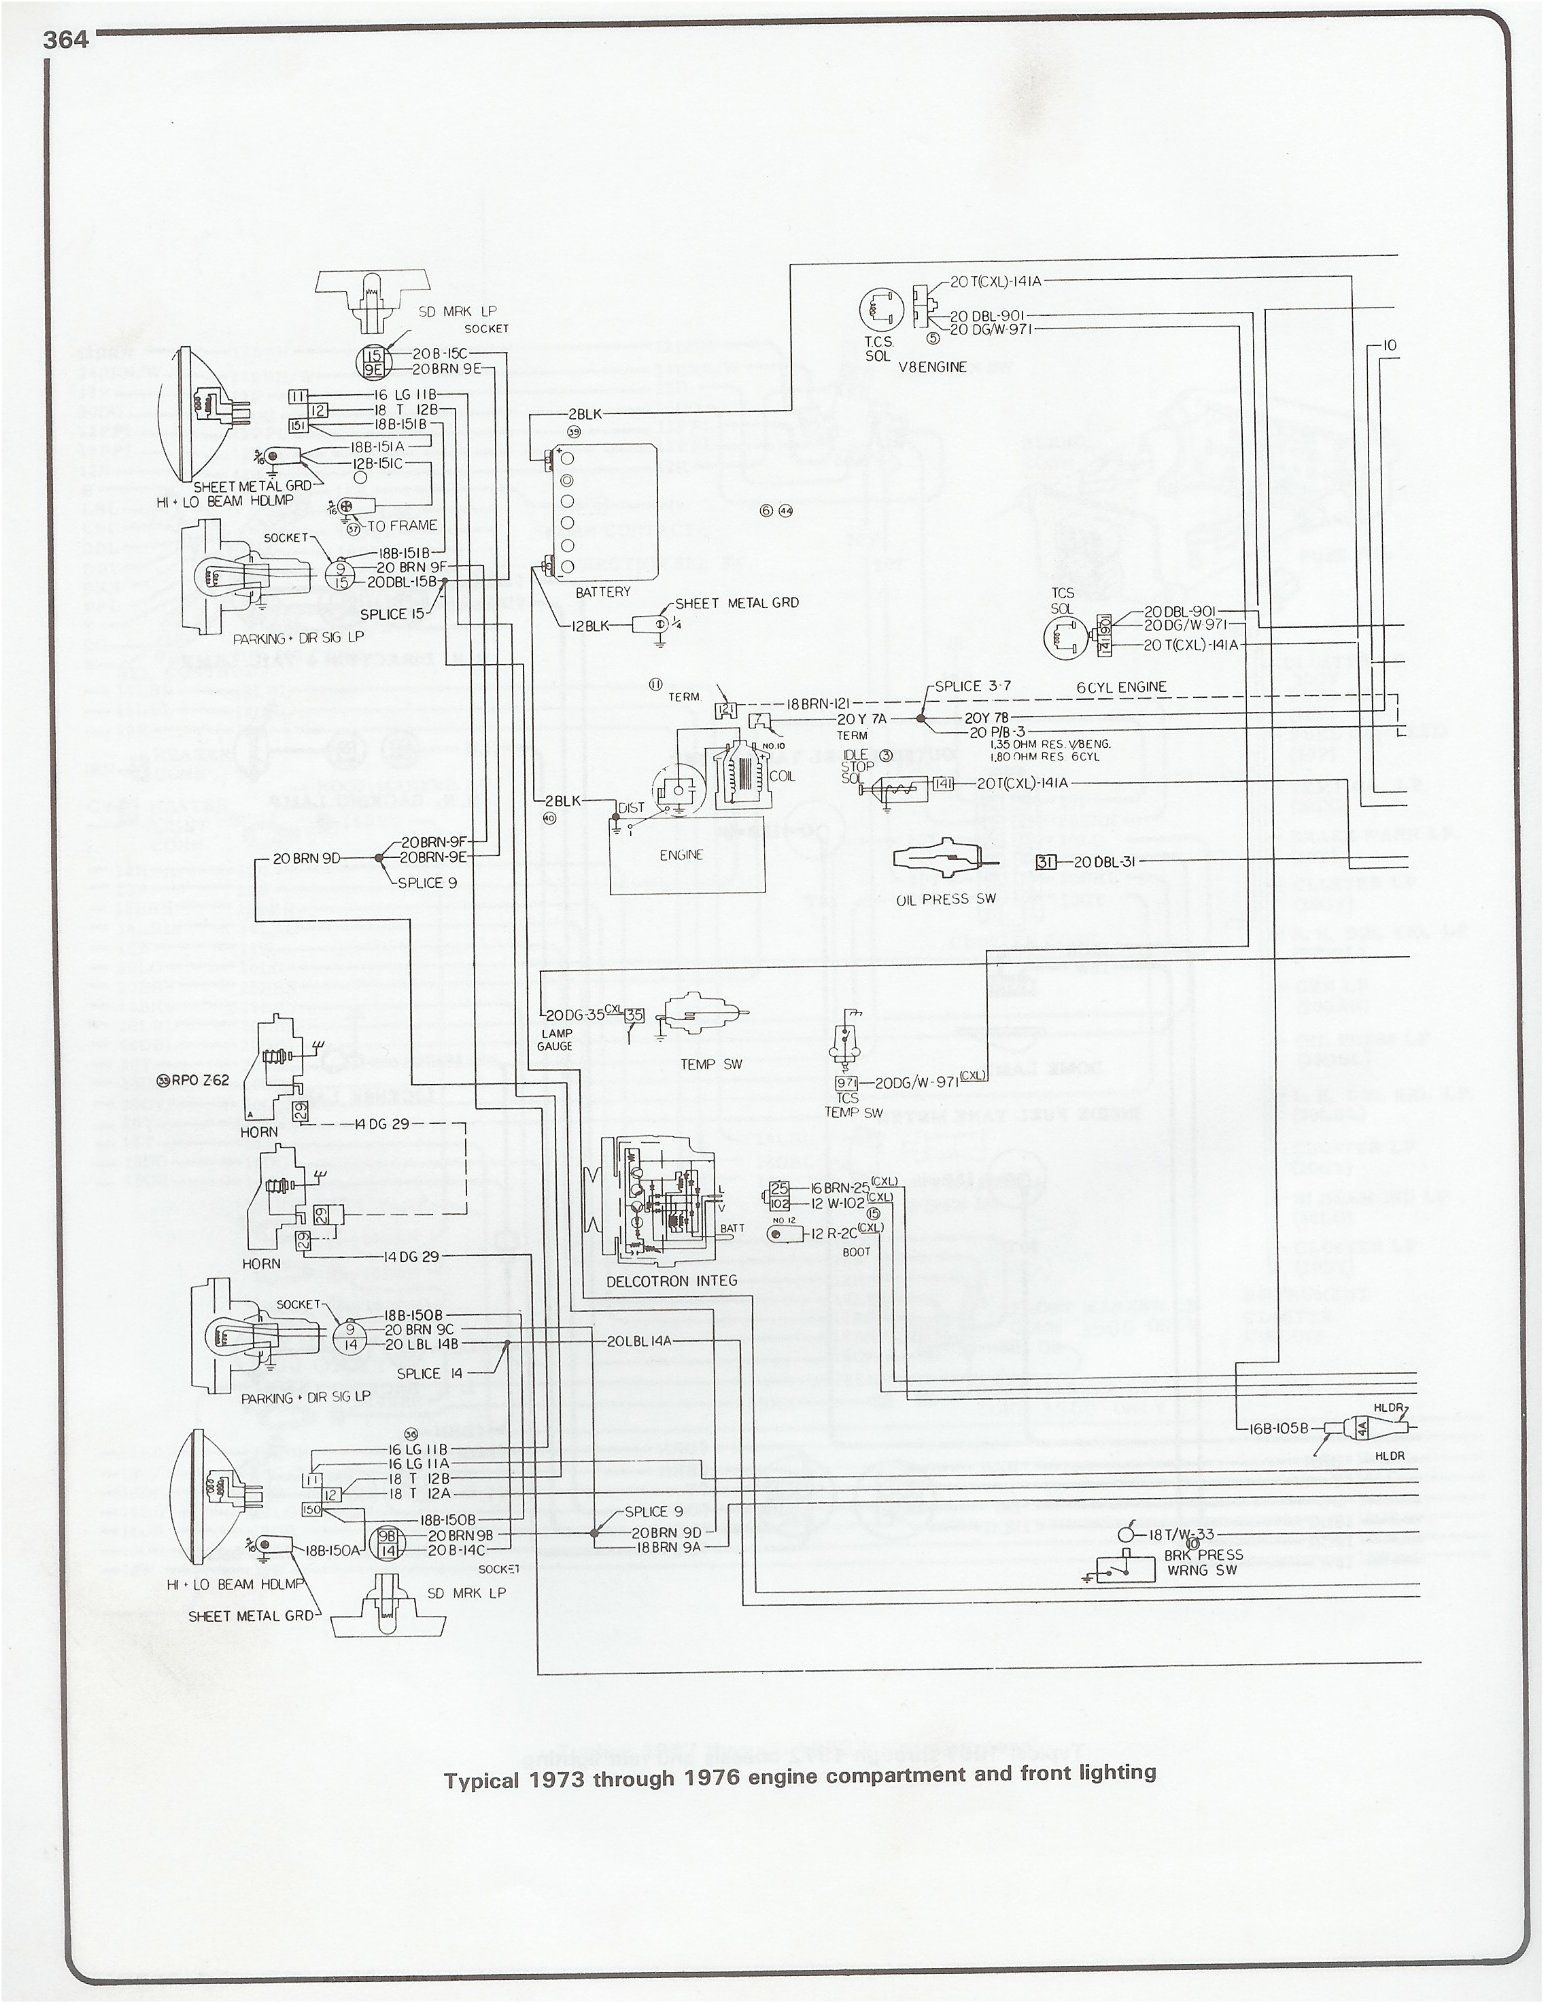 1975 chevy truck wiring diagram wiring diagram new 1975 c10 pickup wiring diagram data wiring diagram [ 1544 x 2003 Pixel ]